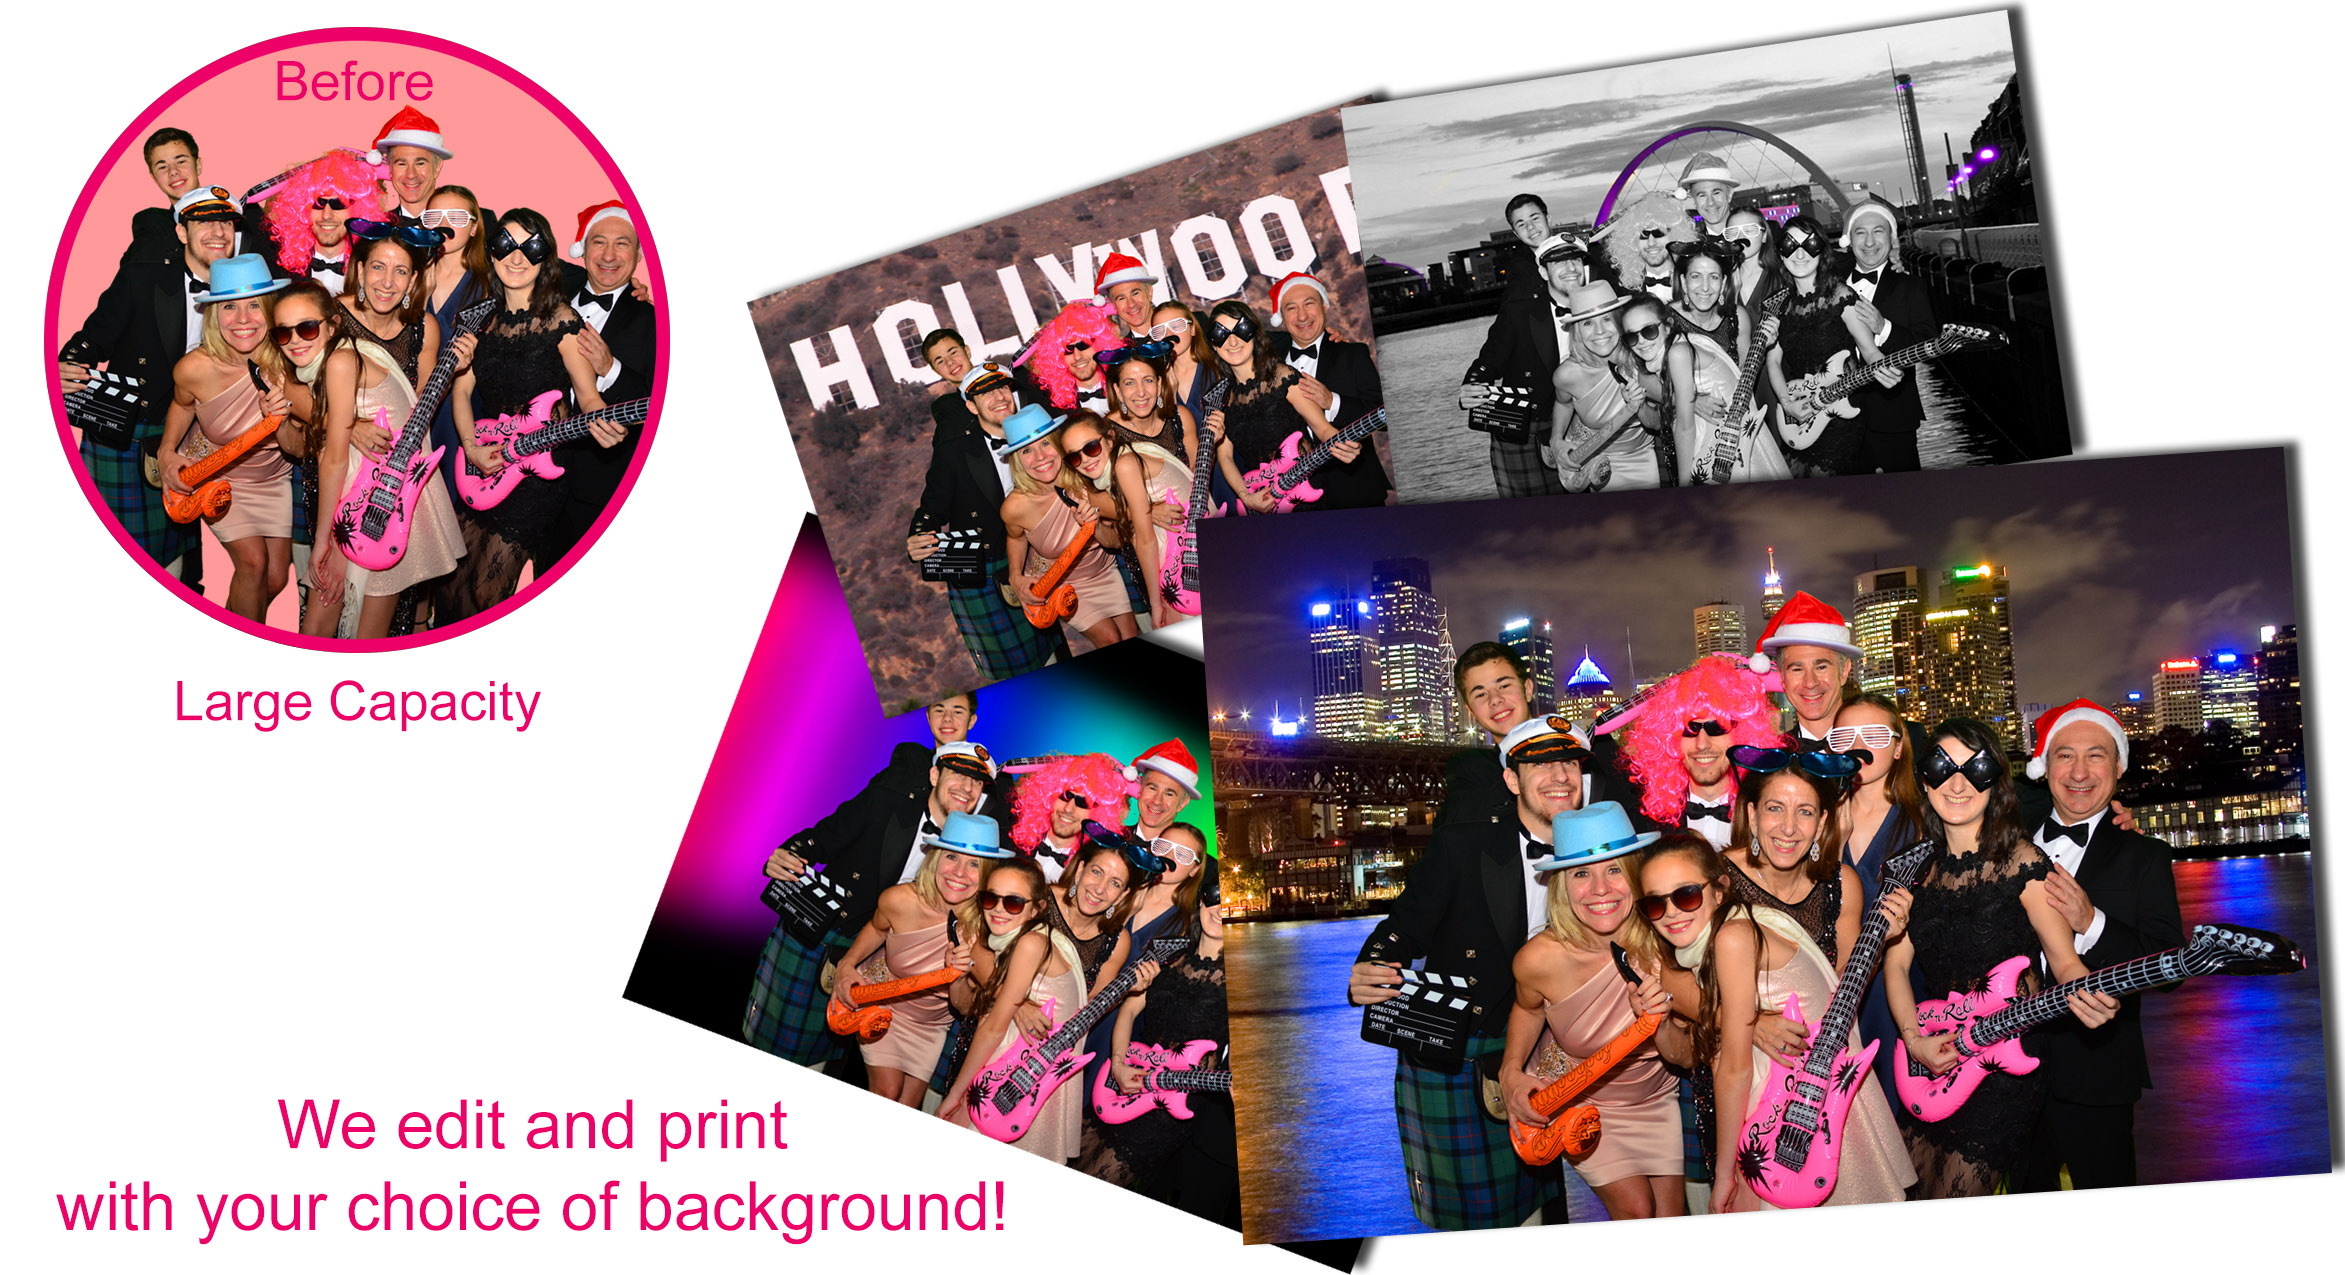 Green Screen Photo Booth Hire - Scotland   UK-Photo-Booth co uk